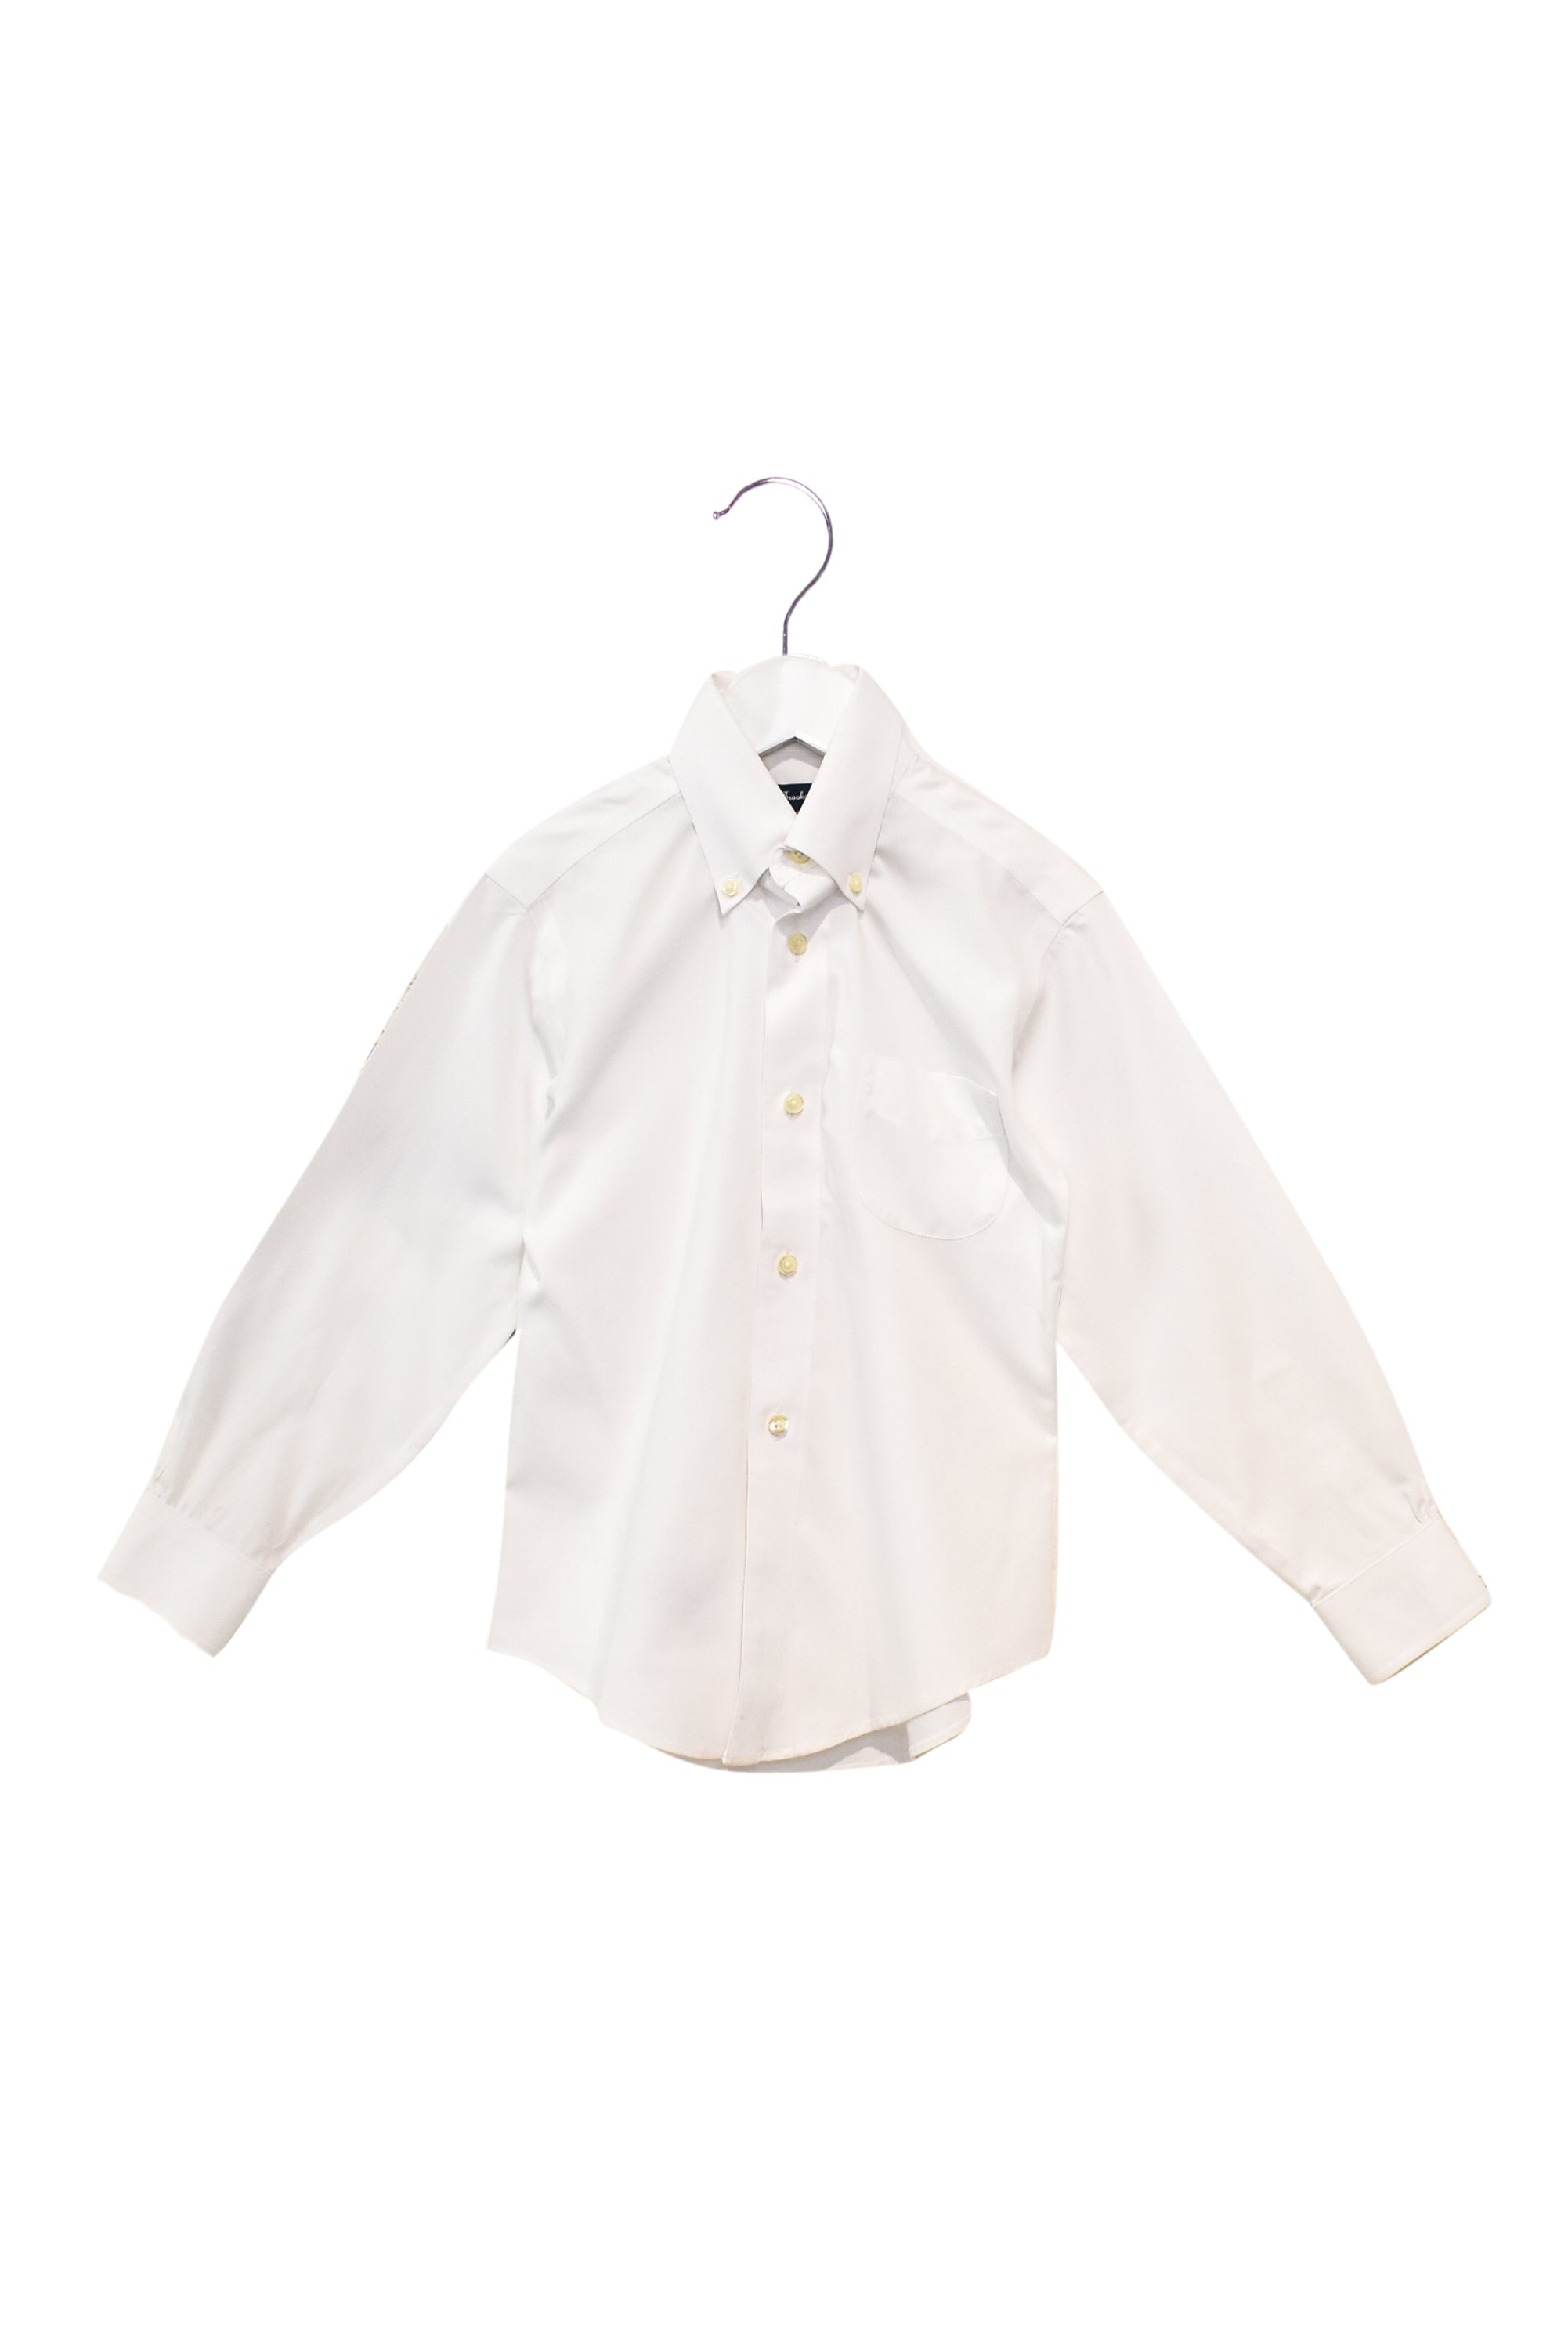 10028268 Brooks Brothers Kids~Shirt 6T at Retykle